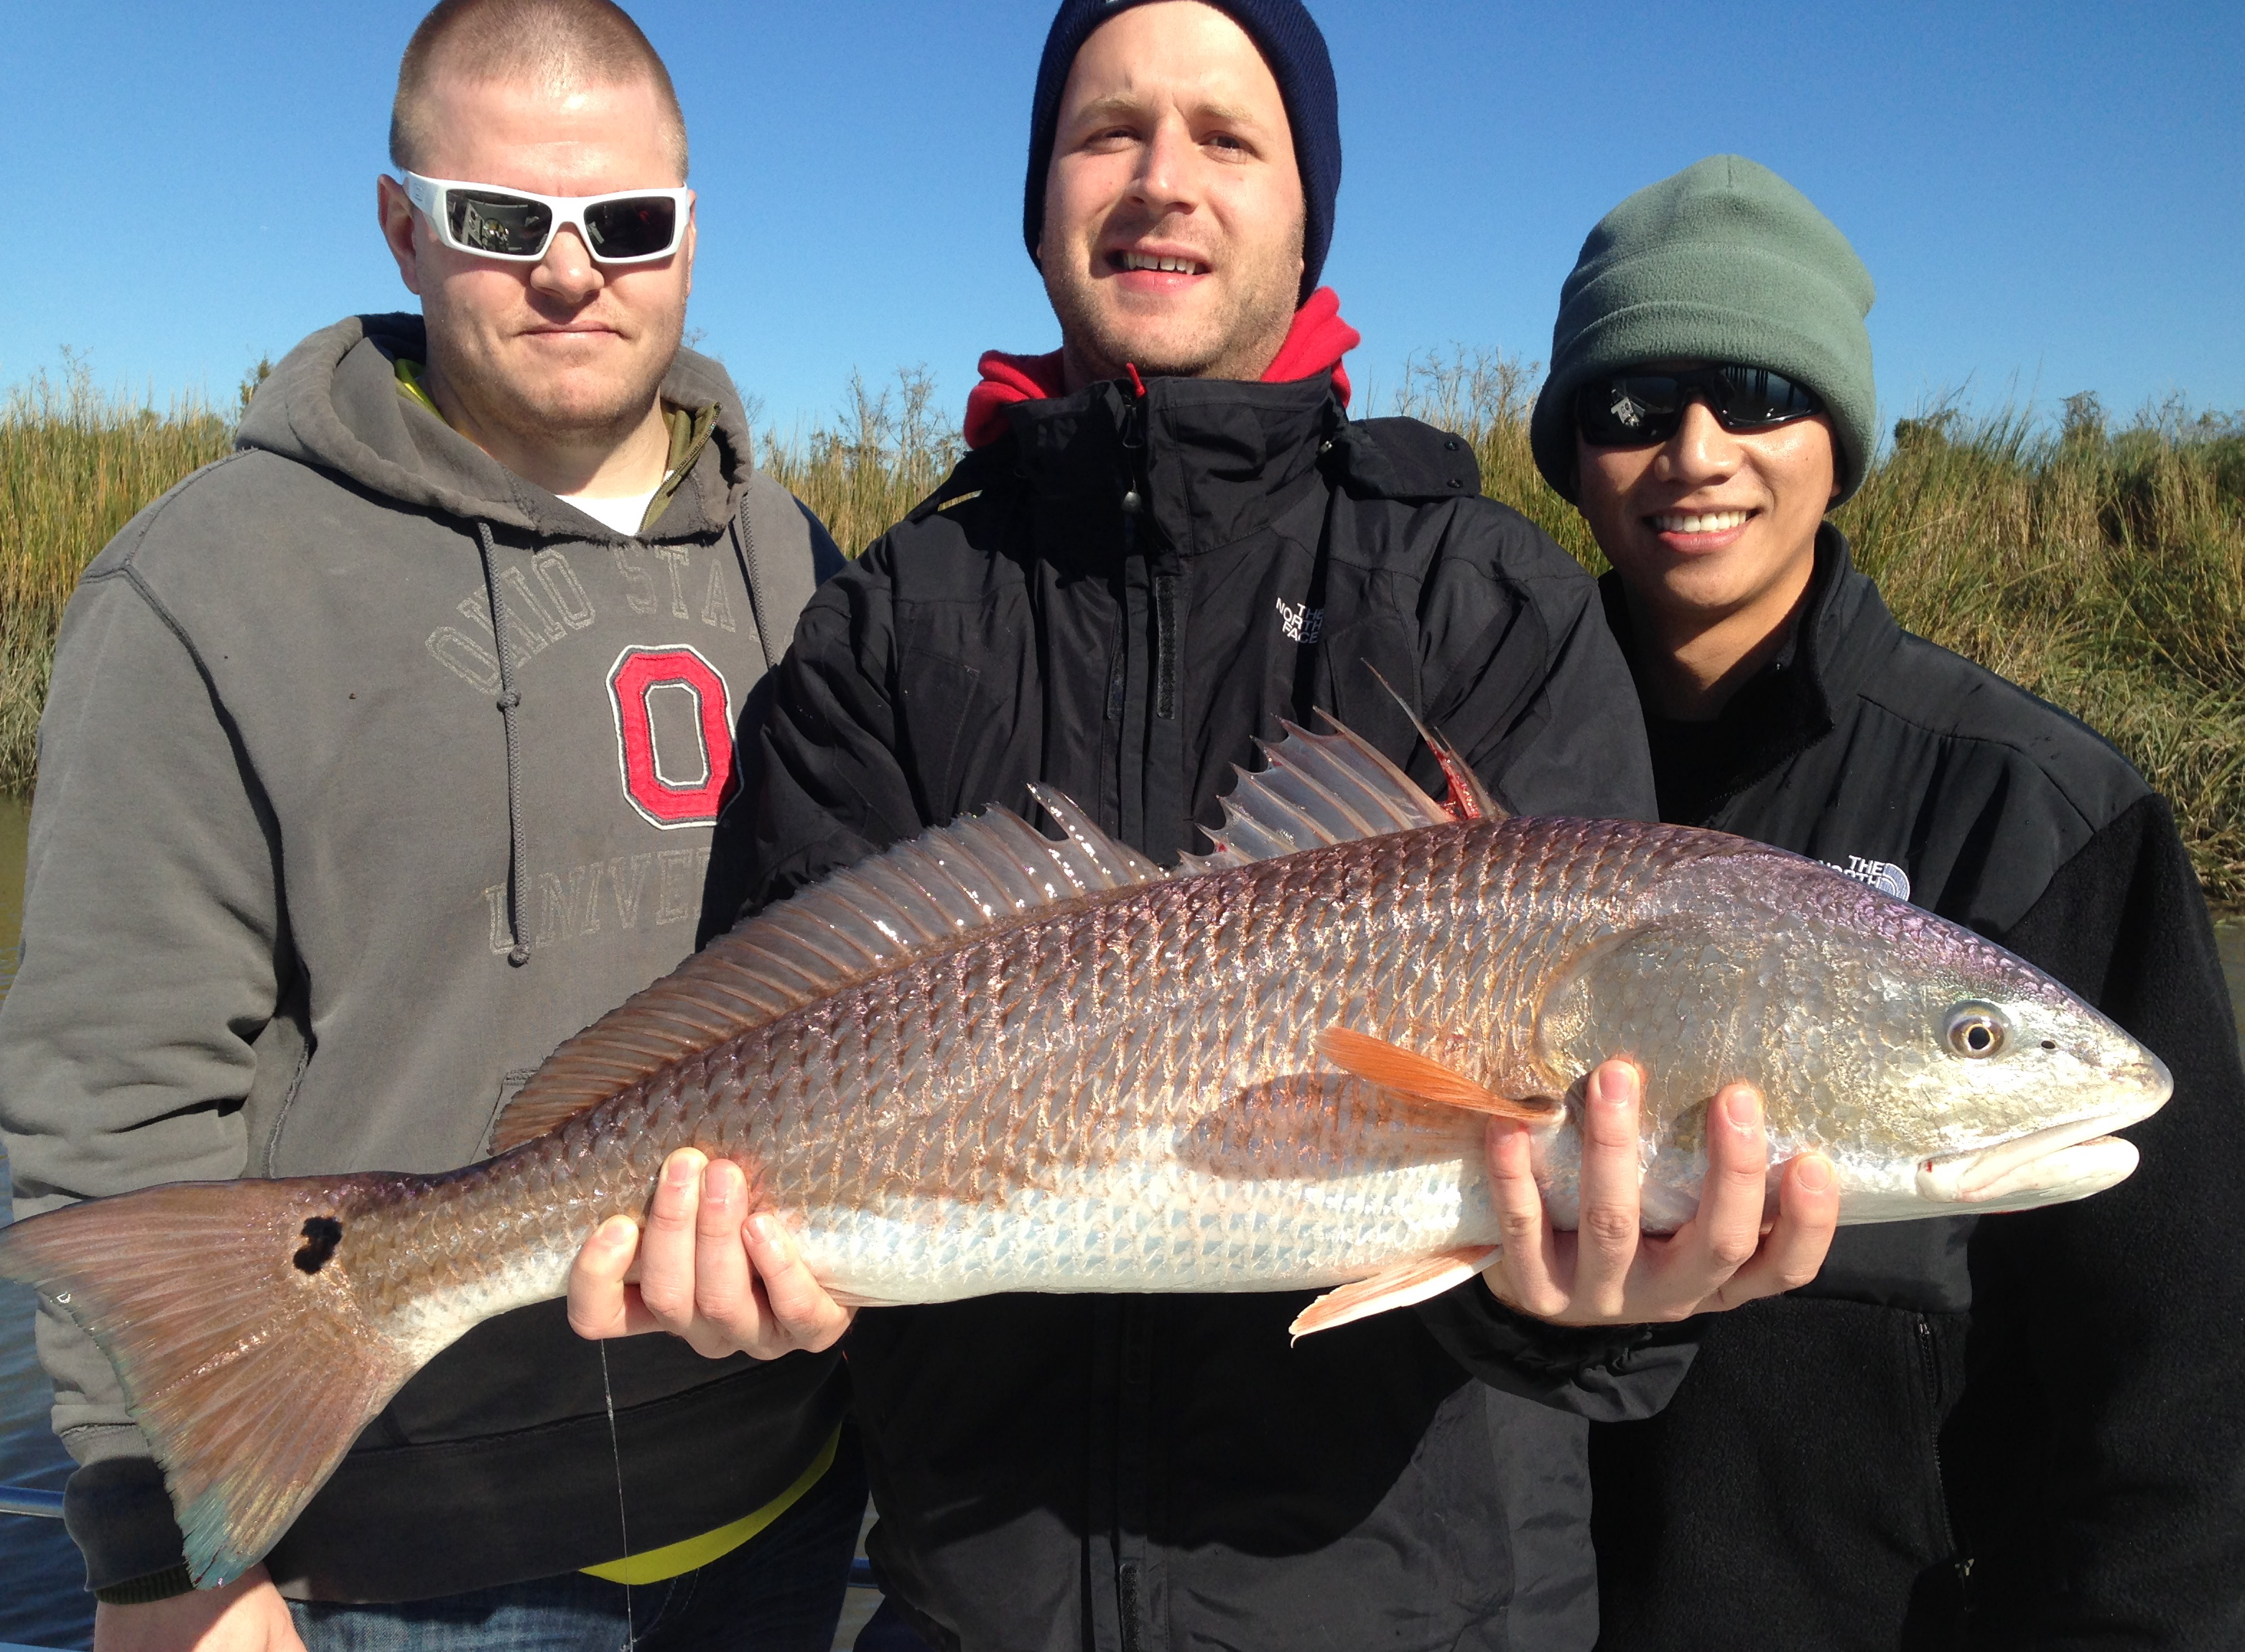 Marcus Ortman. Alexander Perkins and Lam Hoang with a large red! Dandy fish!